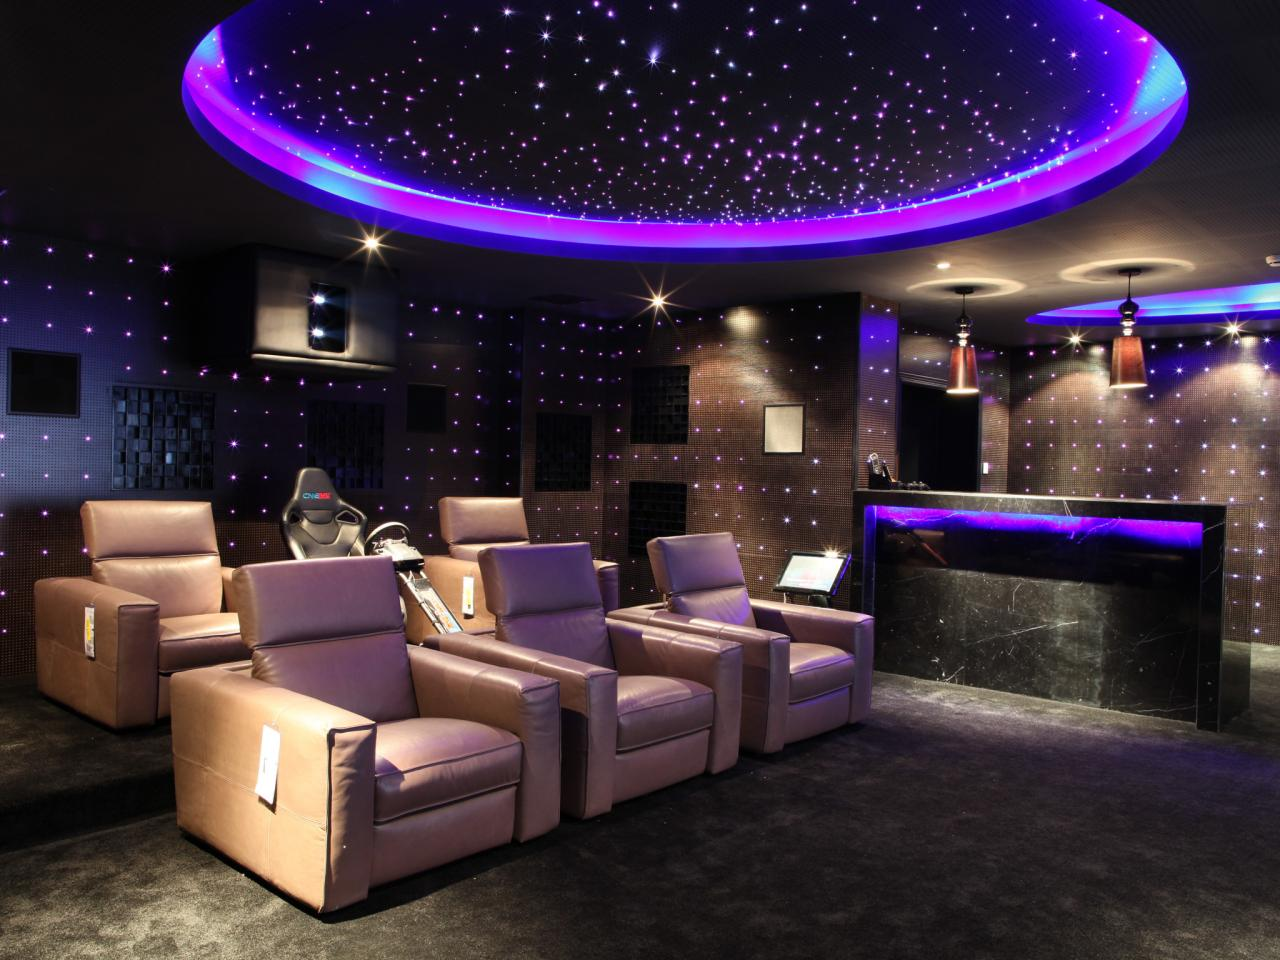 Home Theater Design Ideas landsharks small yet cozy home theater thread avs Home Theater Design Ideas